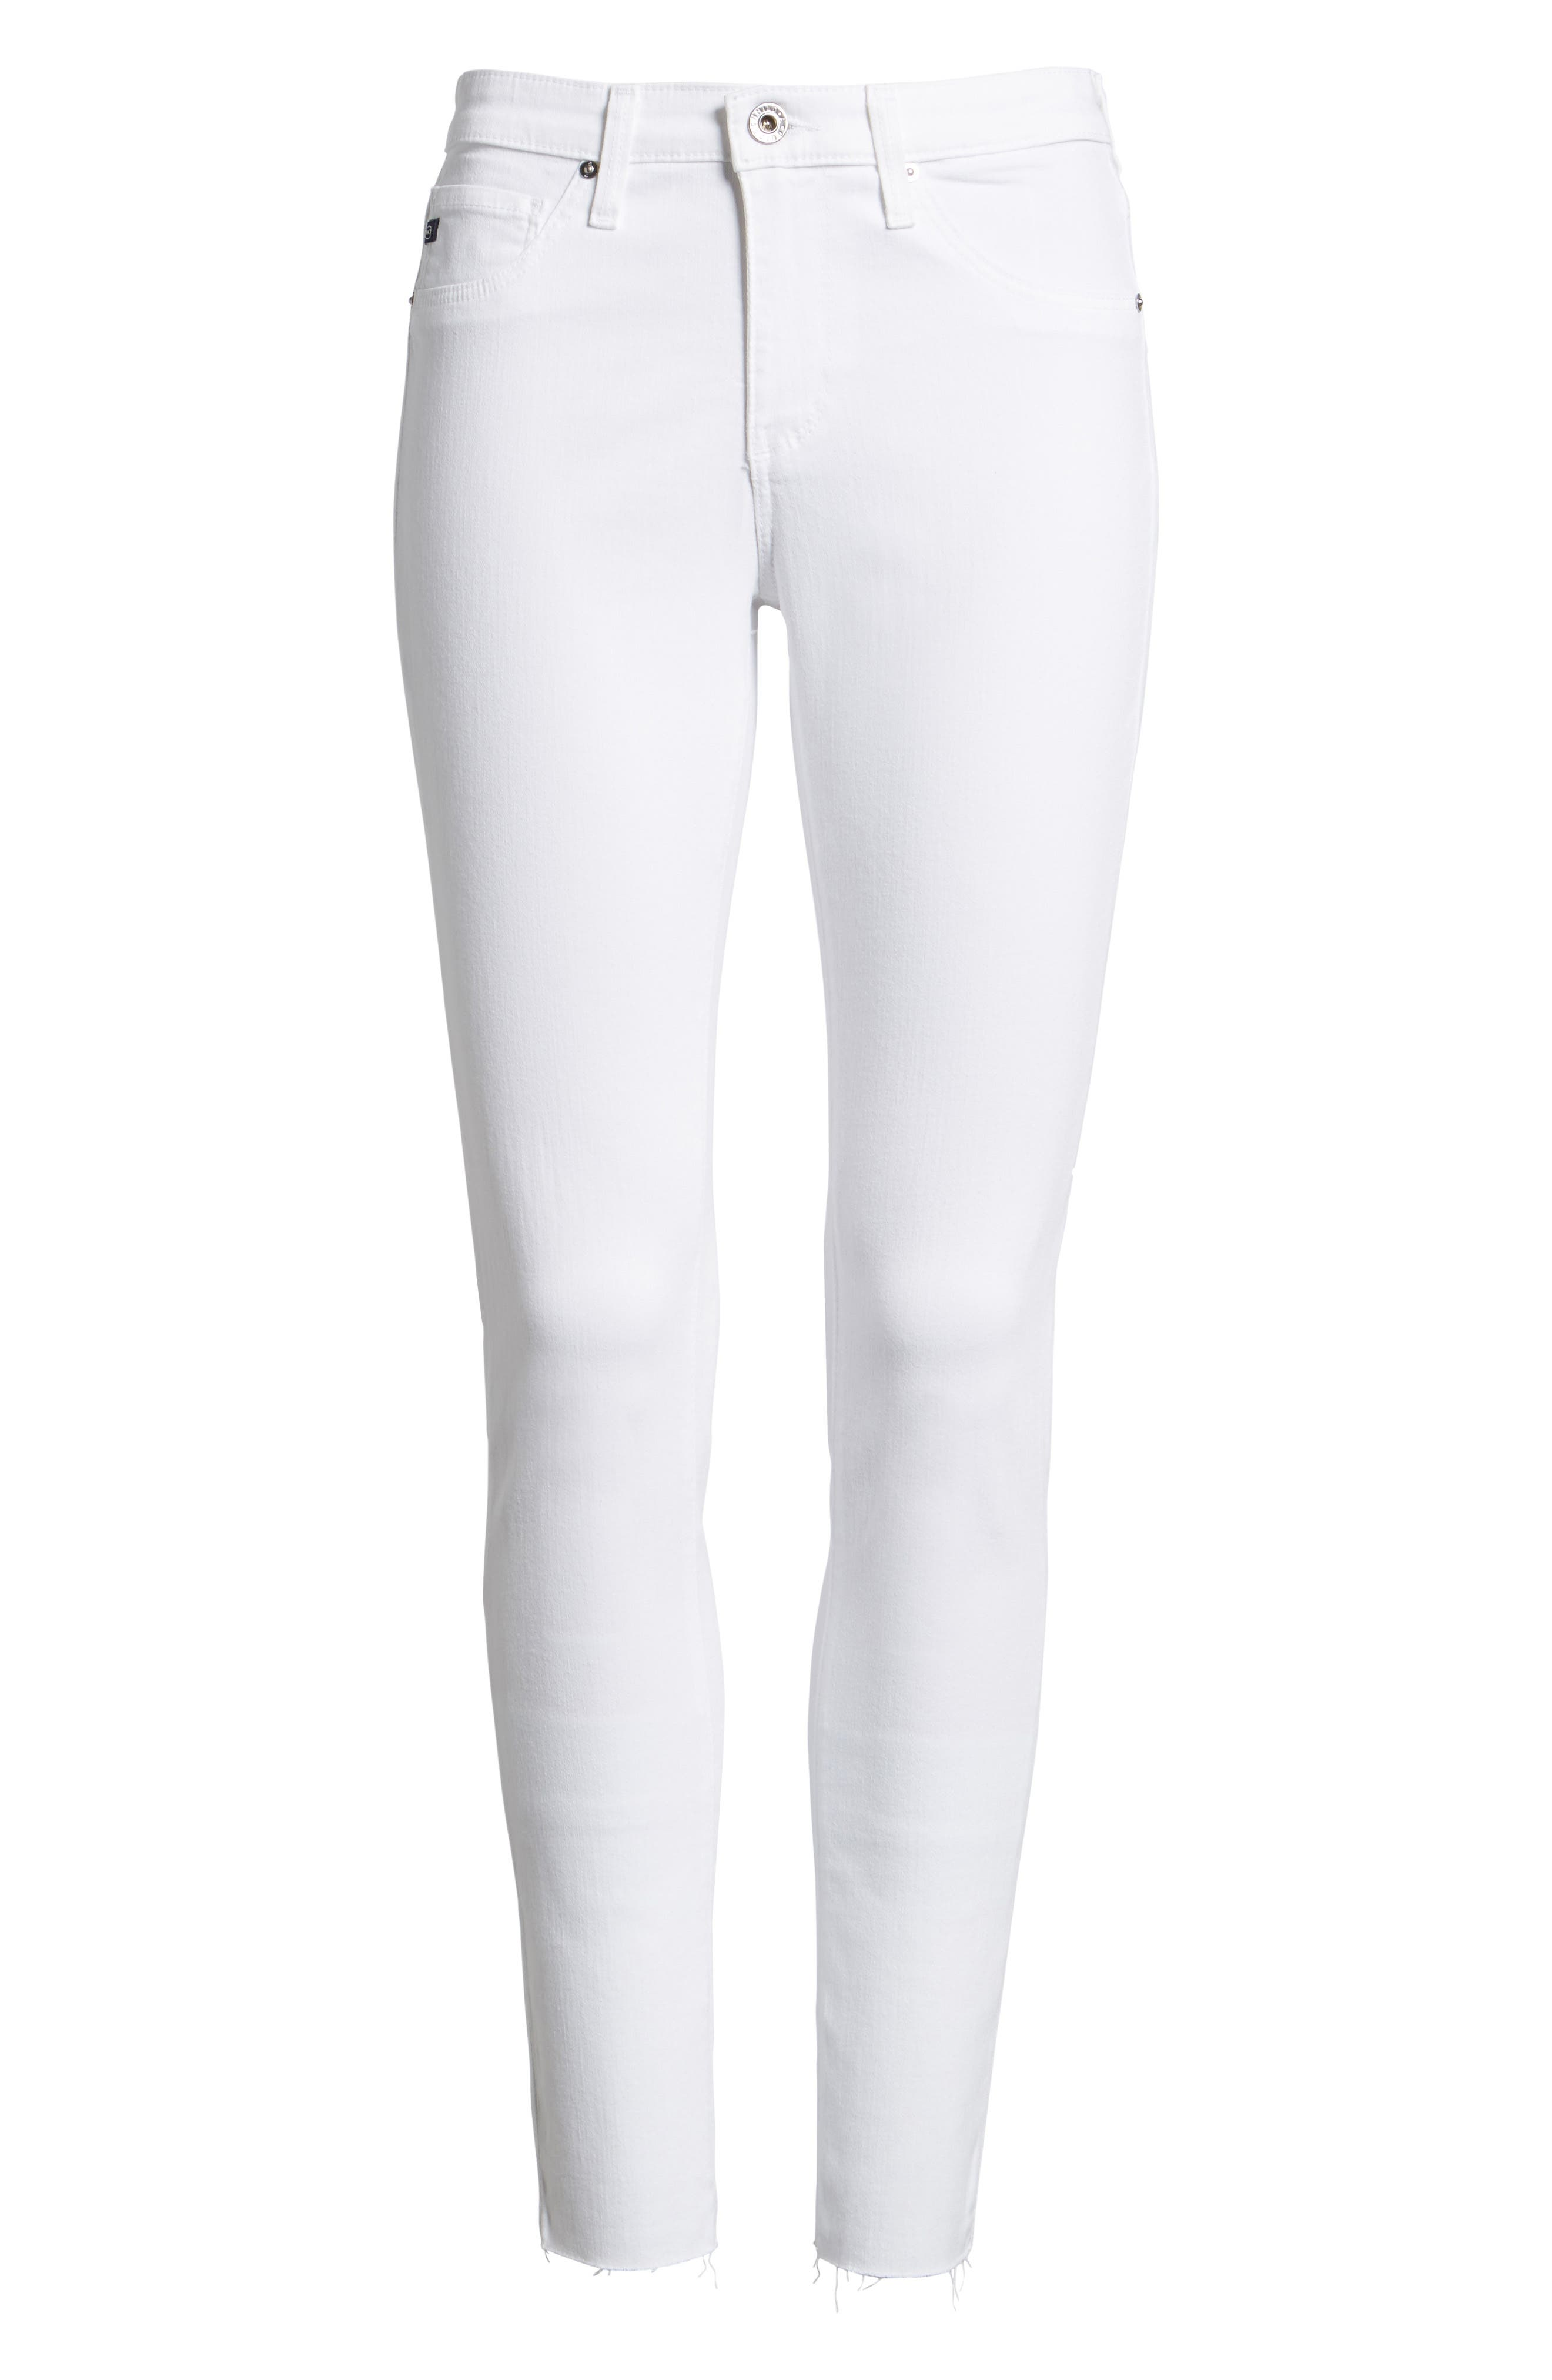 'The Legging' Cutoff Ankle Skinny Jeans,                             Alternate thumbnail 3, color,                             WHITE